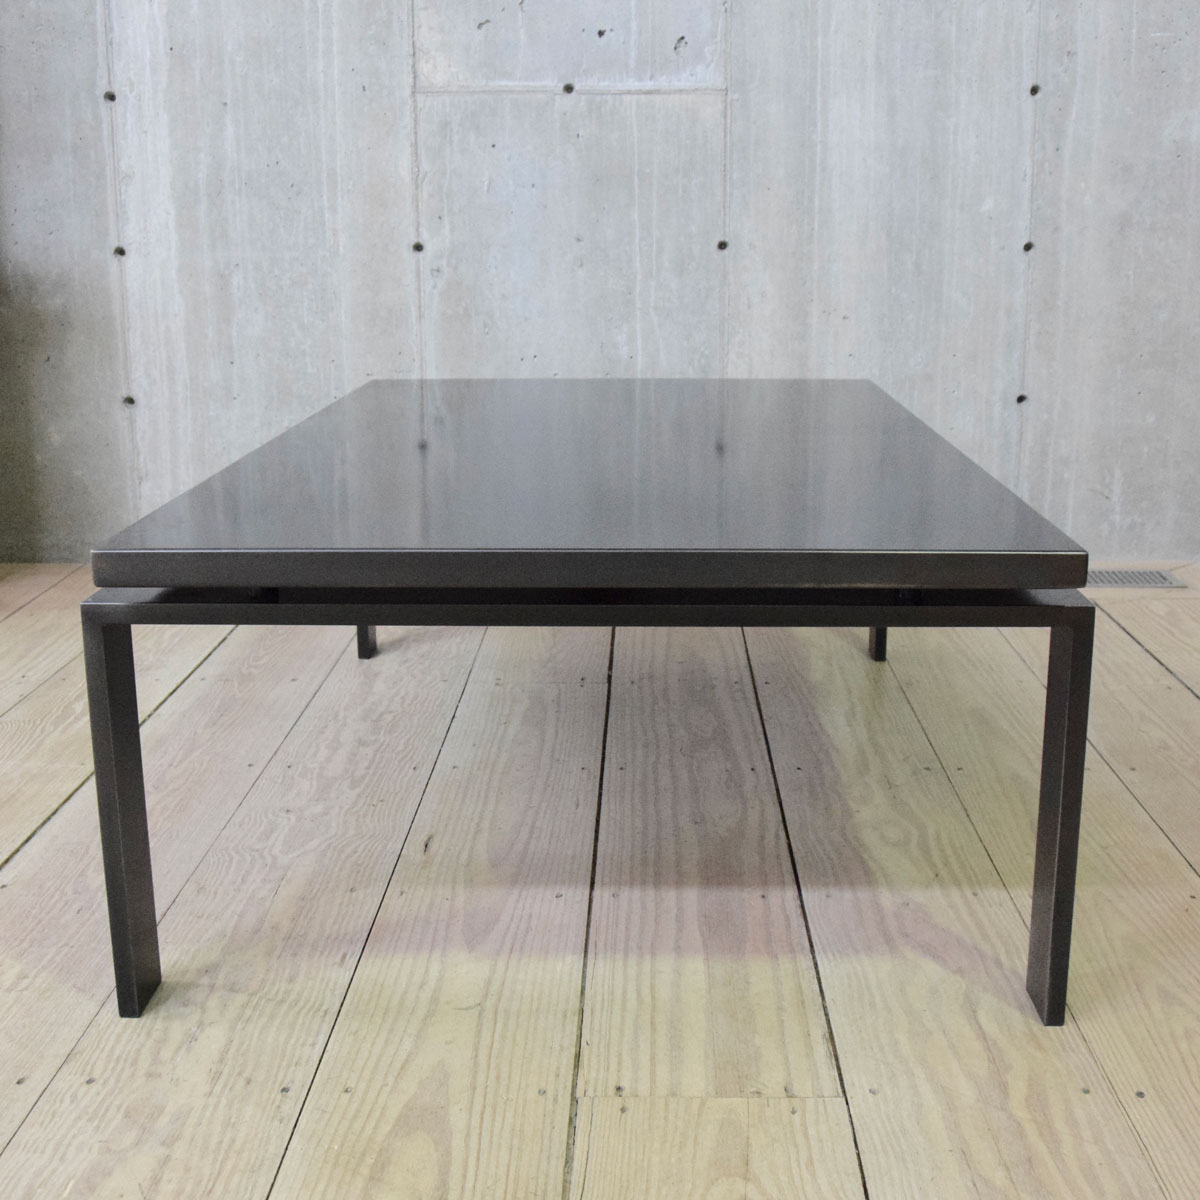 Most Recent Minimalist Coffee Tables Inside Minimalist Steel Coffee Table With Floating Blackened Steel Top – Rt (View 12 of 20)